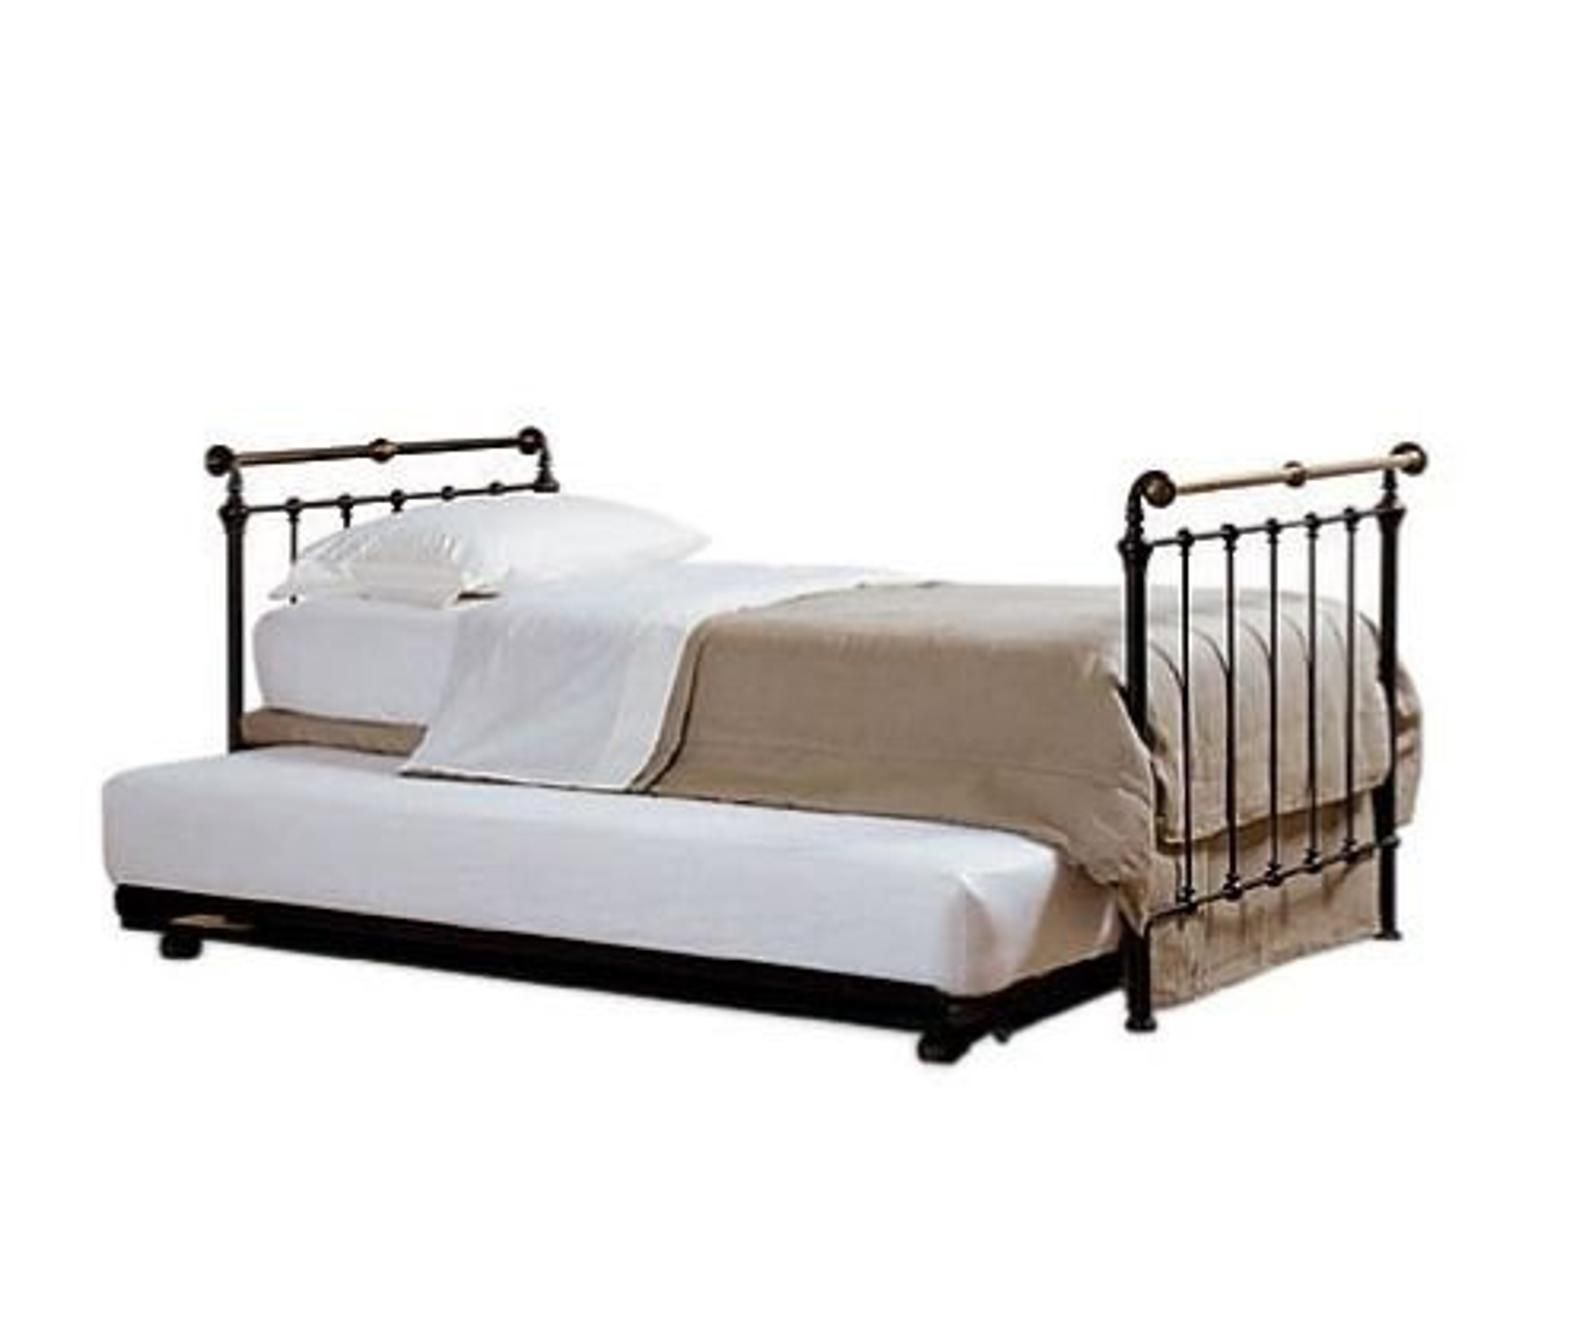 Hand Cast Iron And Brass Trundle Day Bed From Renowned Etsy